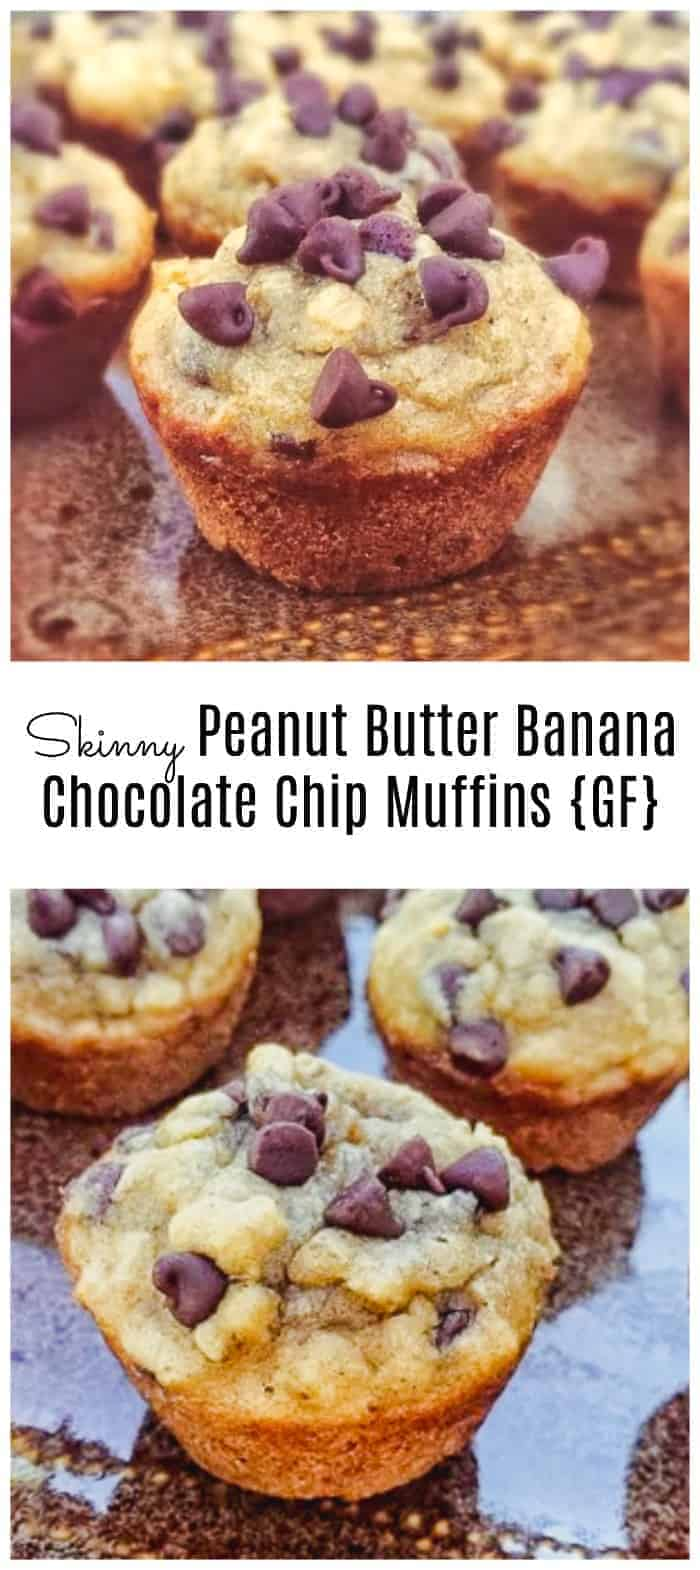 Skinny Peanut Butter Banana and Chocolate Chip Muffins {GF}